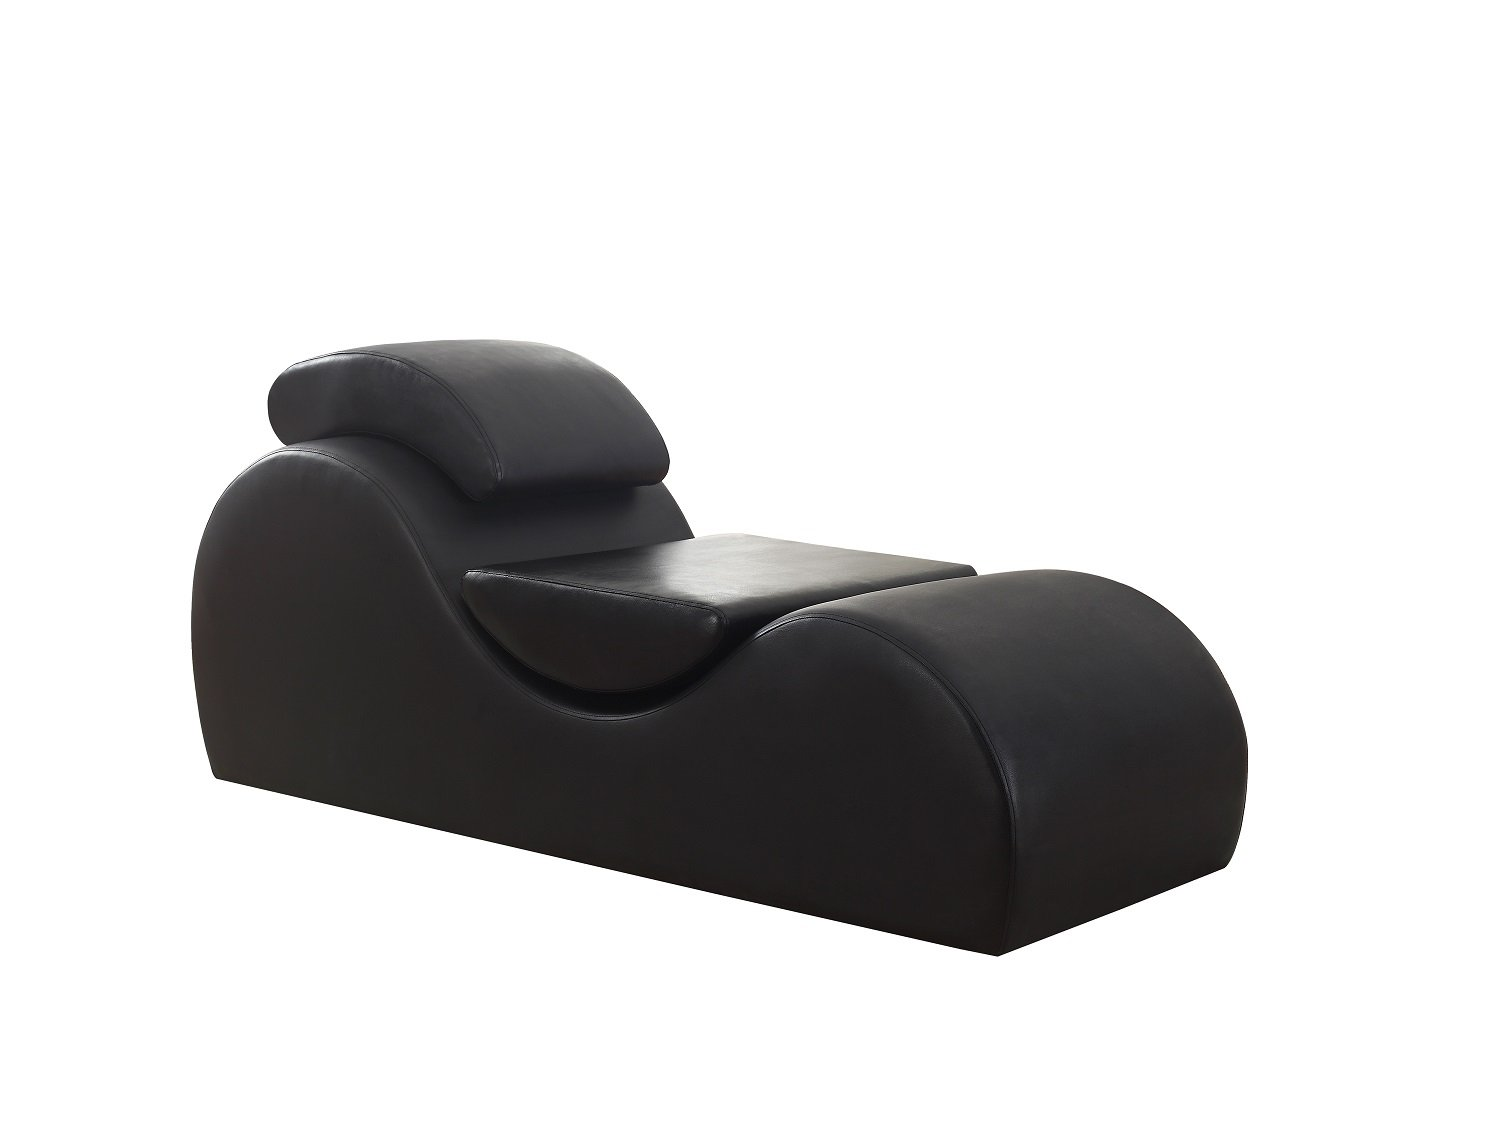 US Pride Furniture Modern Faux Leather Upholstered Relaxation Stretch Chaise and Yoga Chair Black by US Pride Furniture